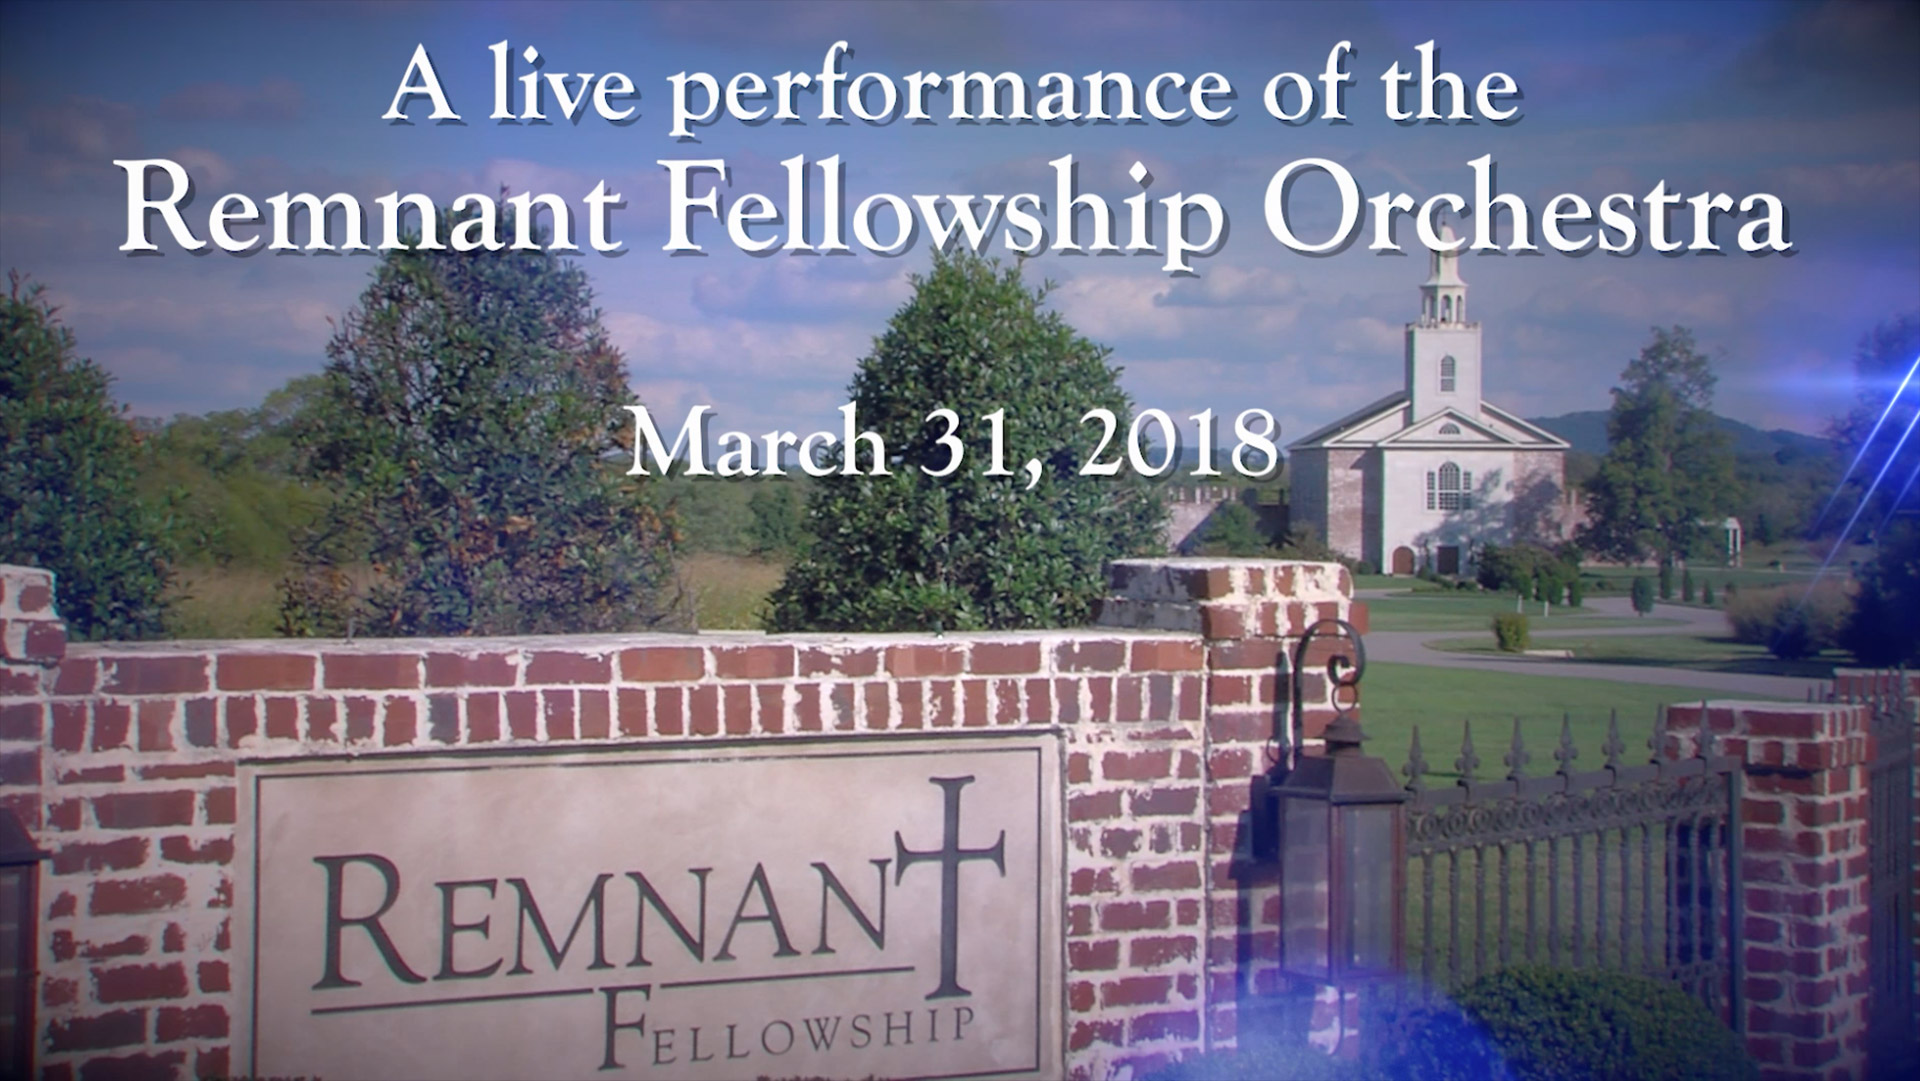 Remnant Fellowship Orchestra